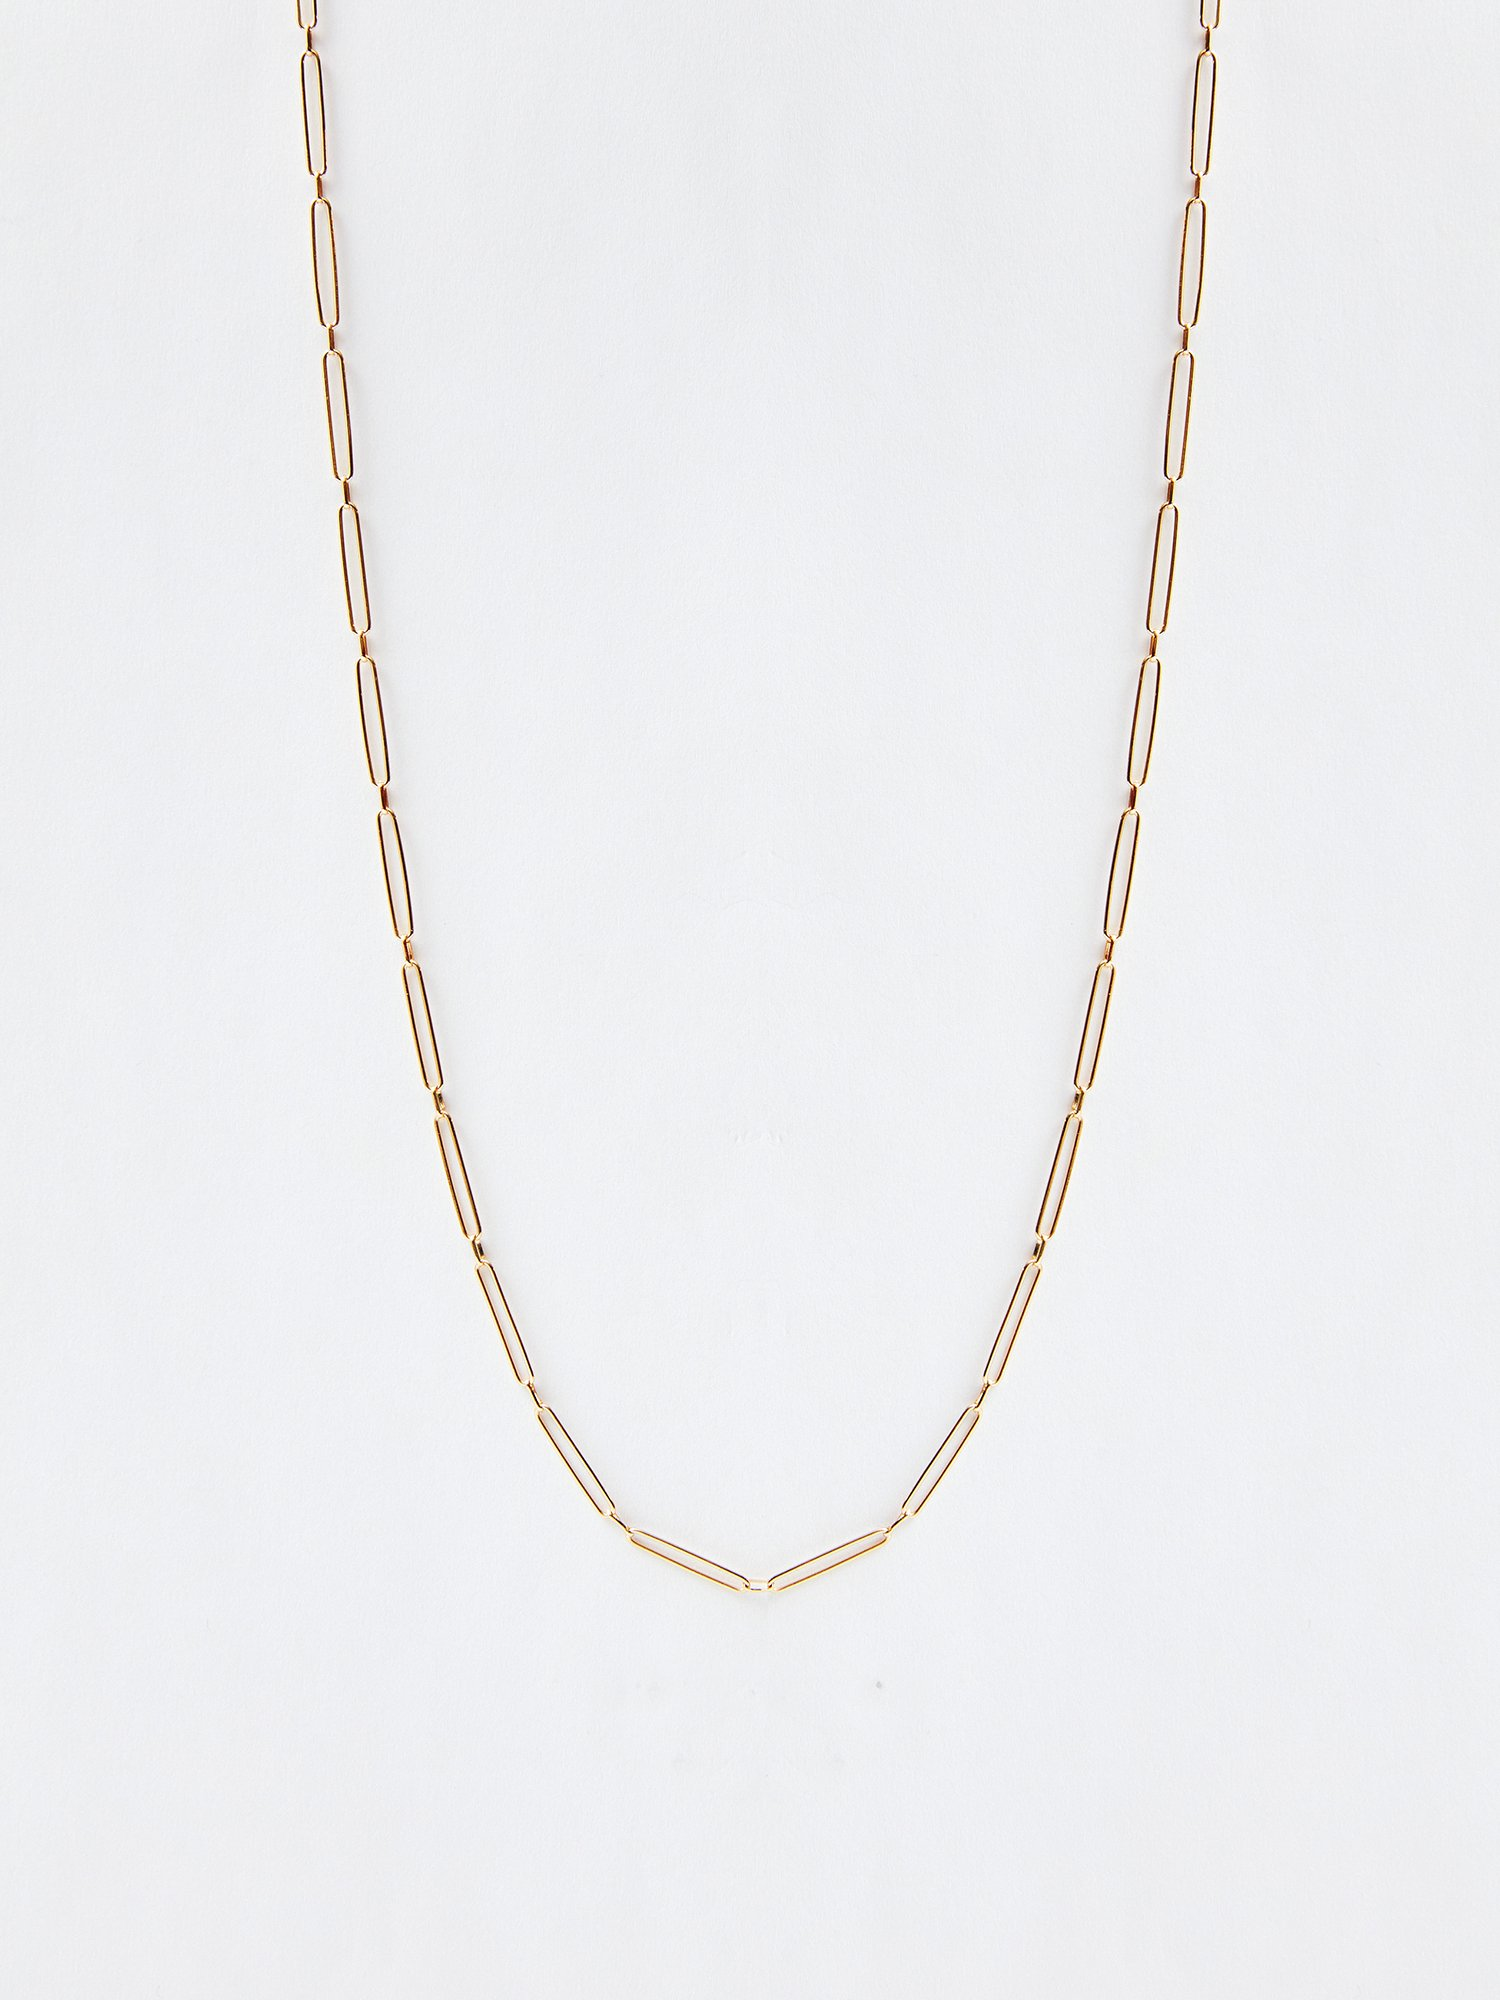 HELIOS / Long chain necklace